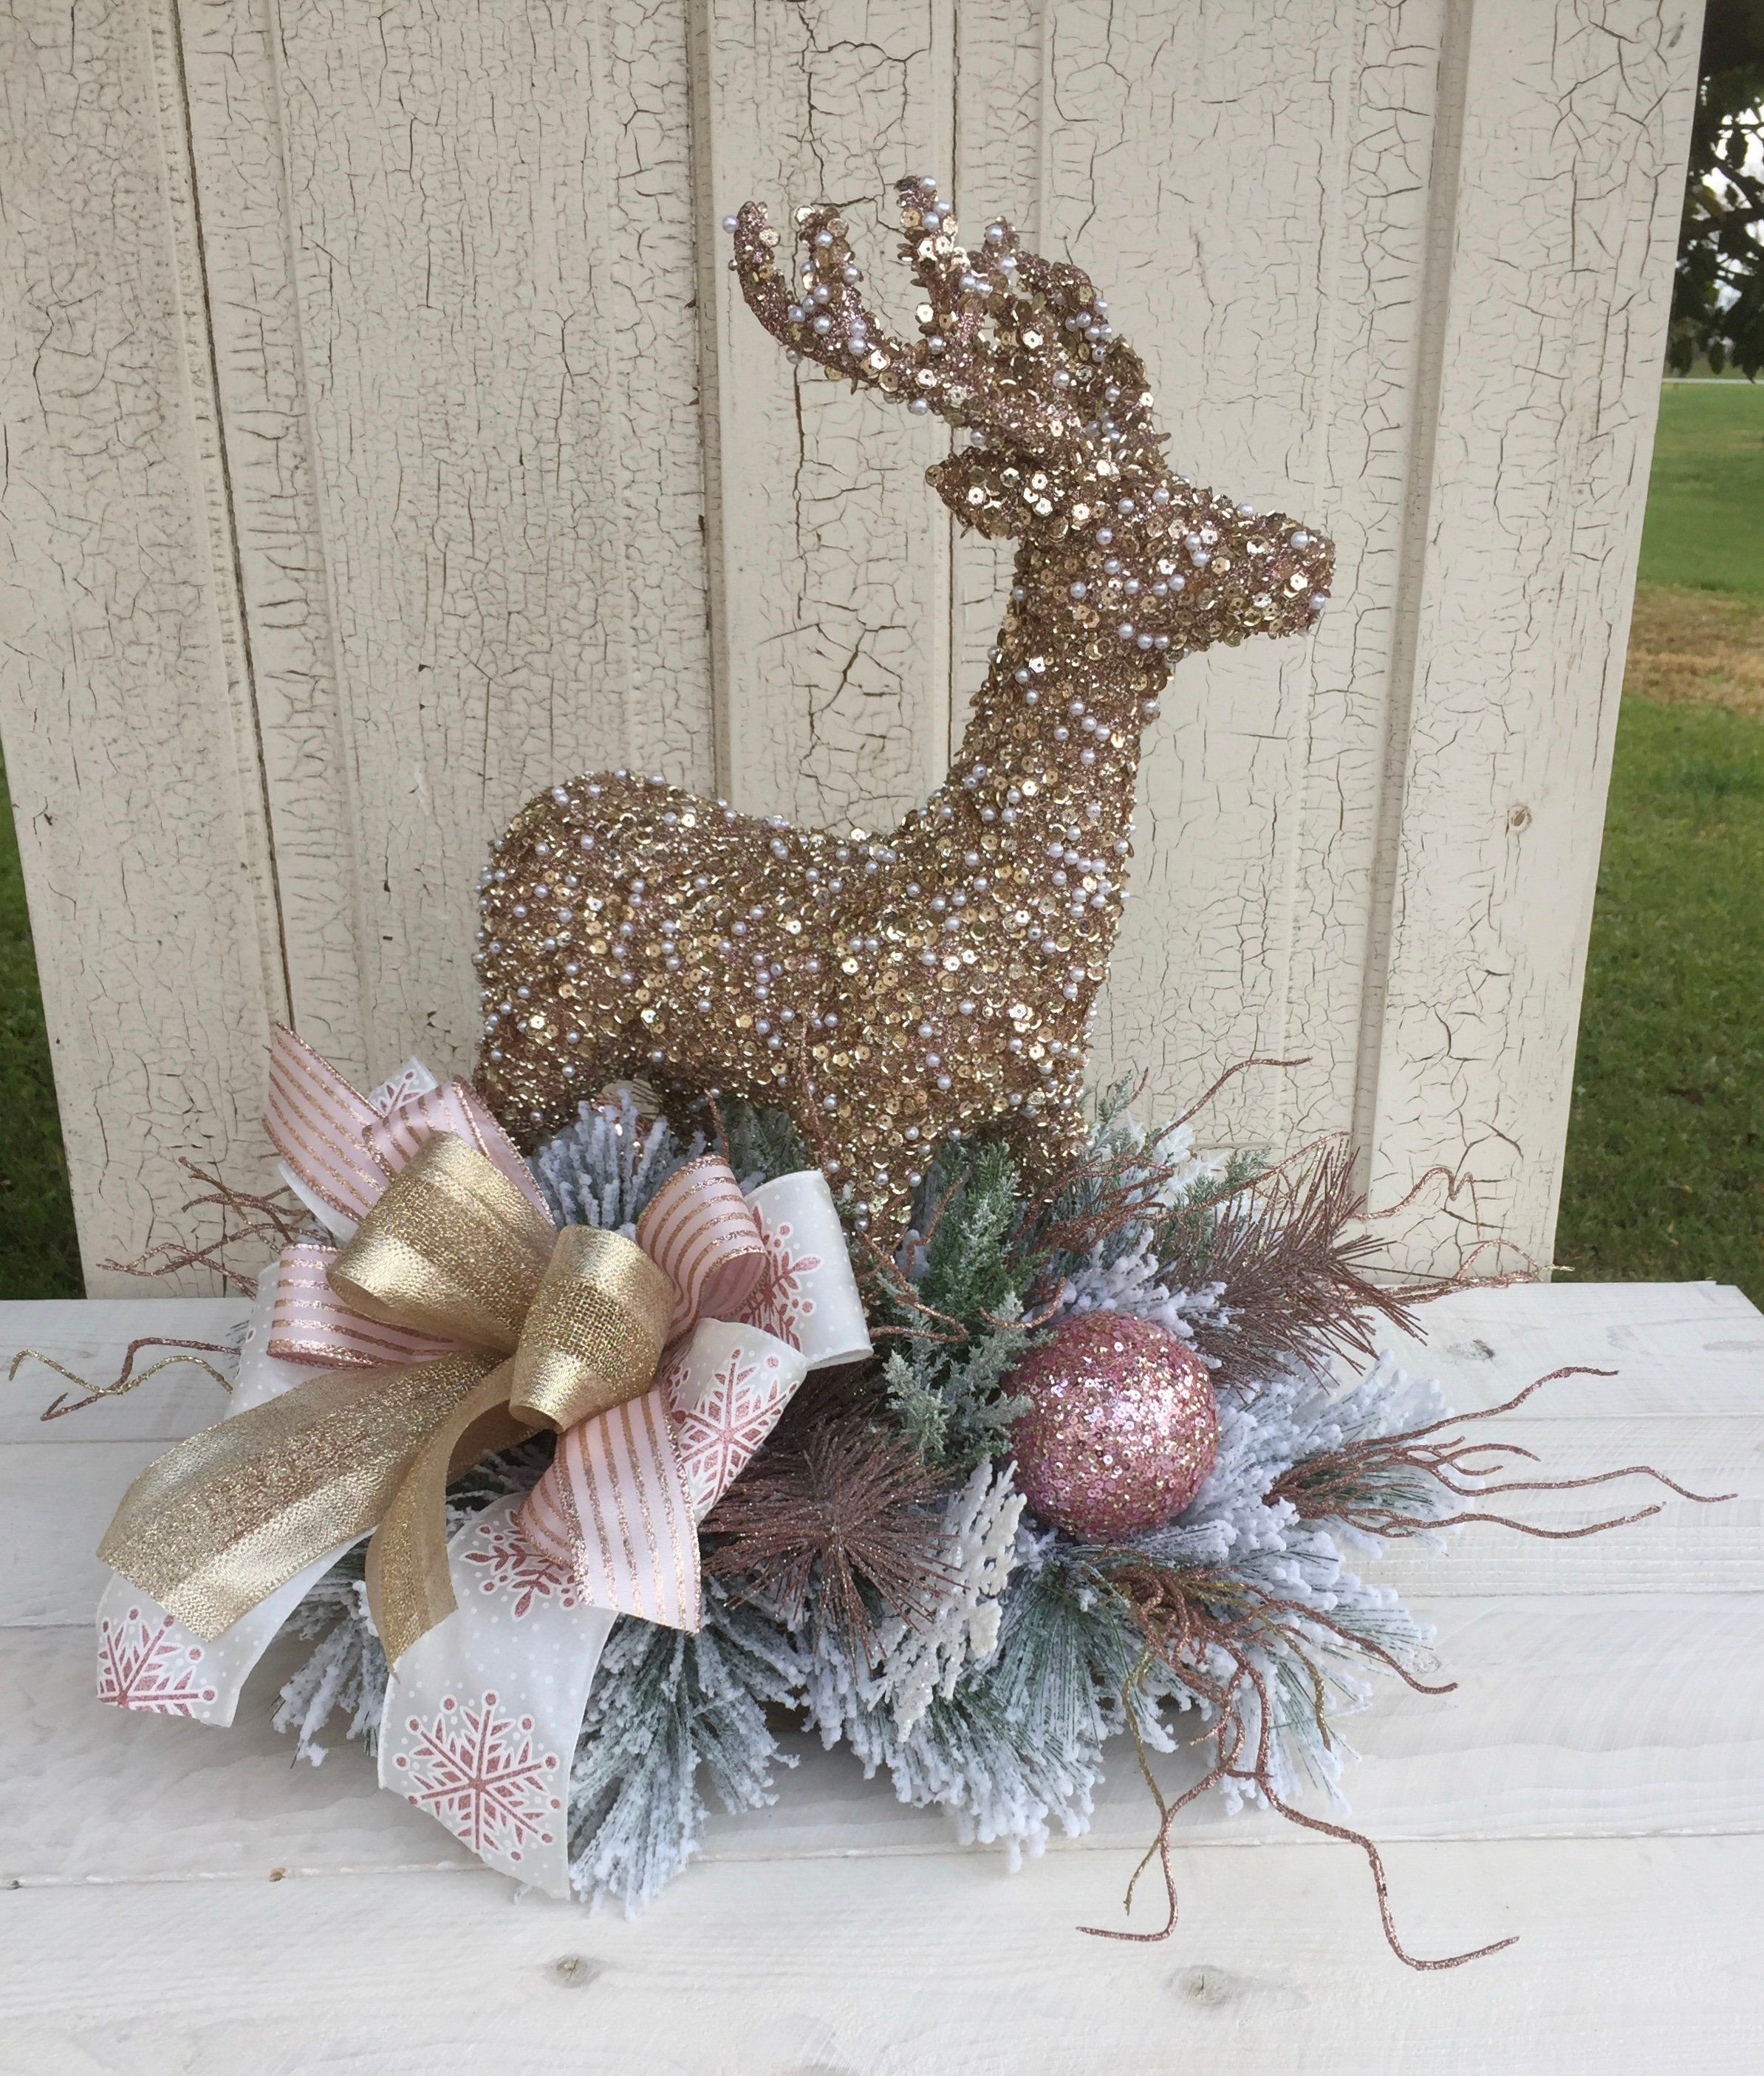 Winter Deer Centerpiece Deer Centerpiece Floral Deer Centerpiece Table Decor Christmas Deer Centerpiece Christmas Deer Arrangement Christmas Floral Christmas Decor Diy Christmas Arrangements Centerpieces